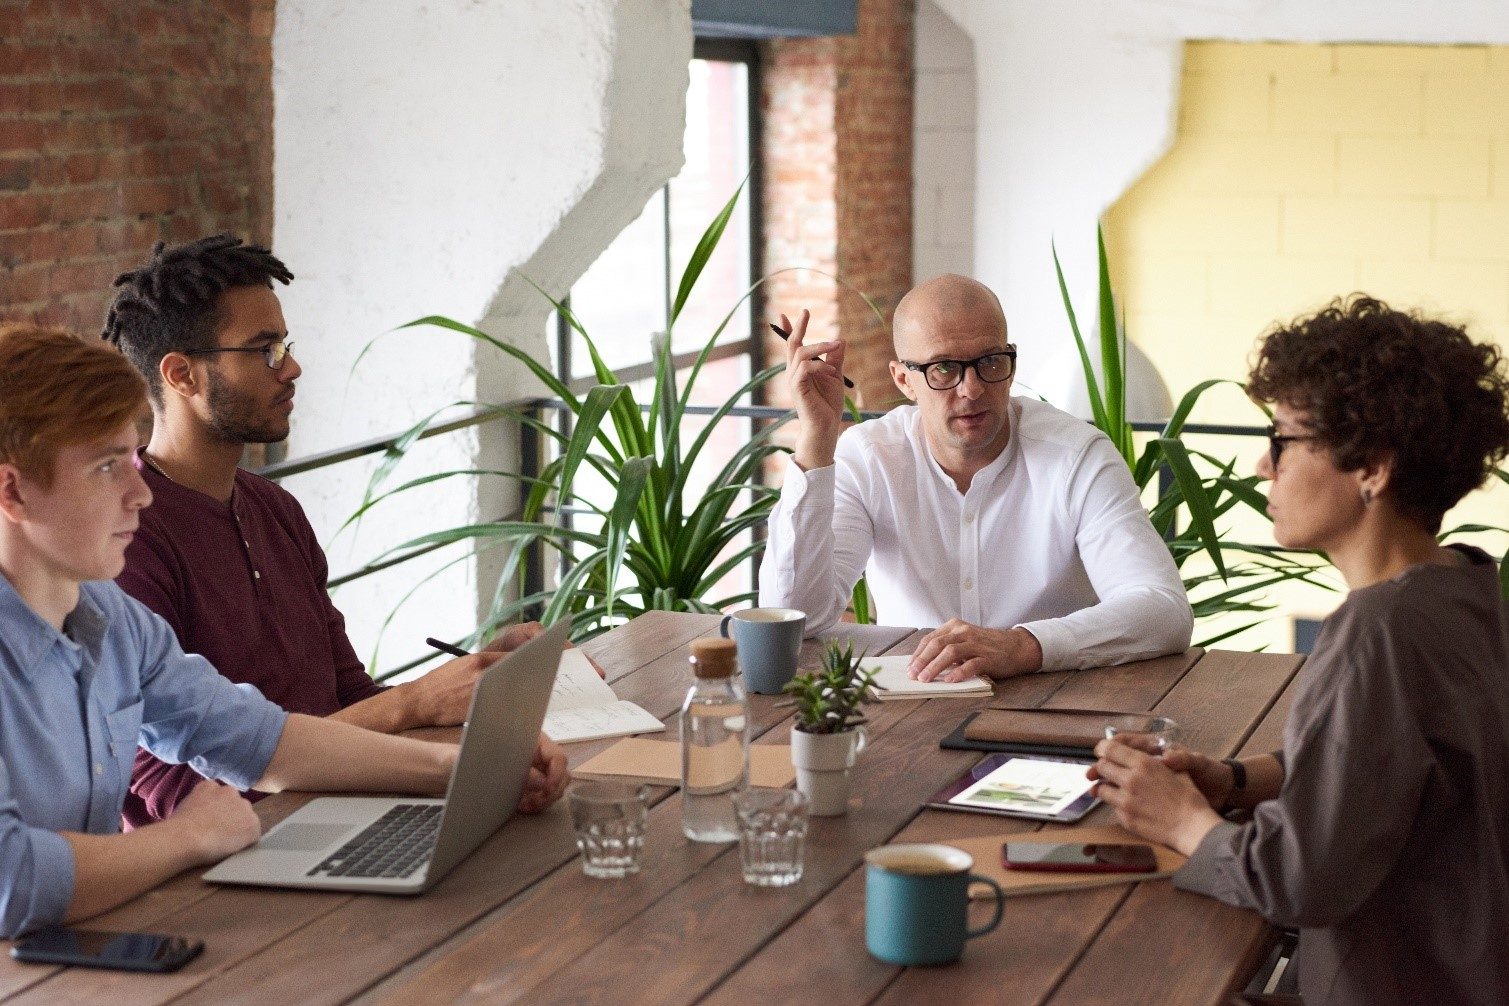 Group of people strategising at meeting table